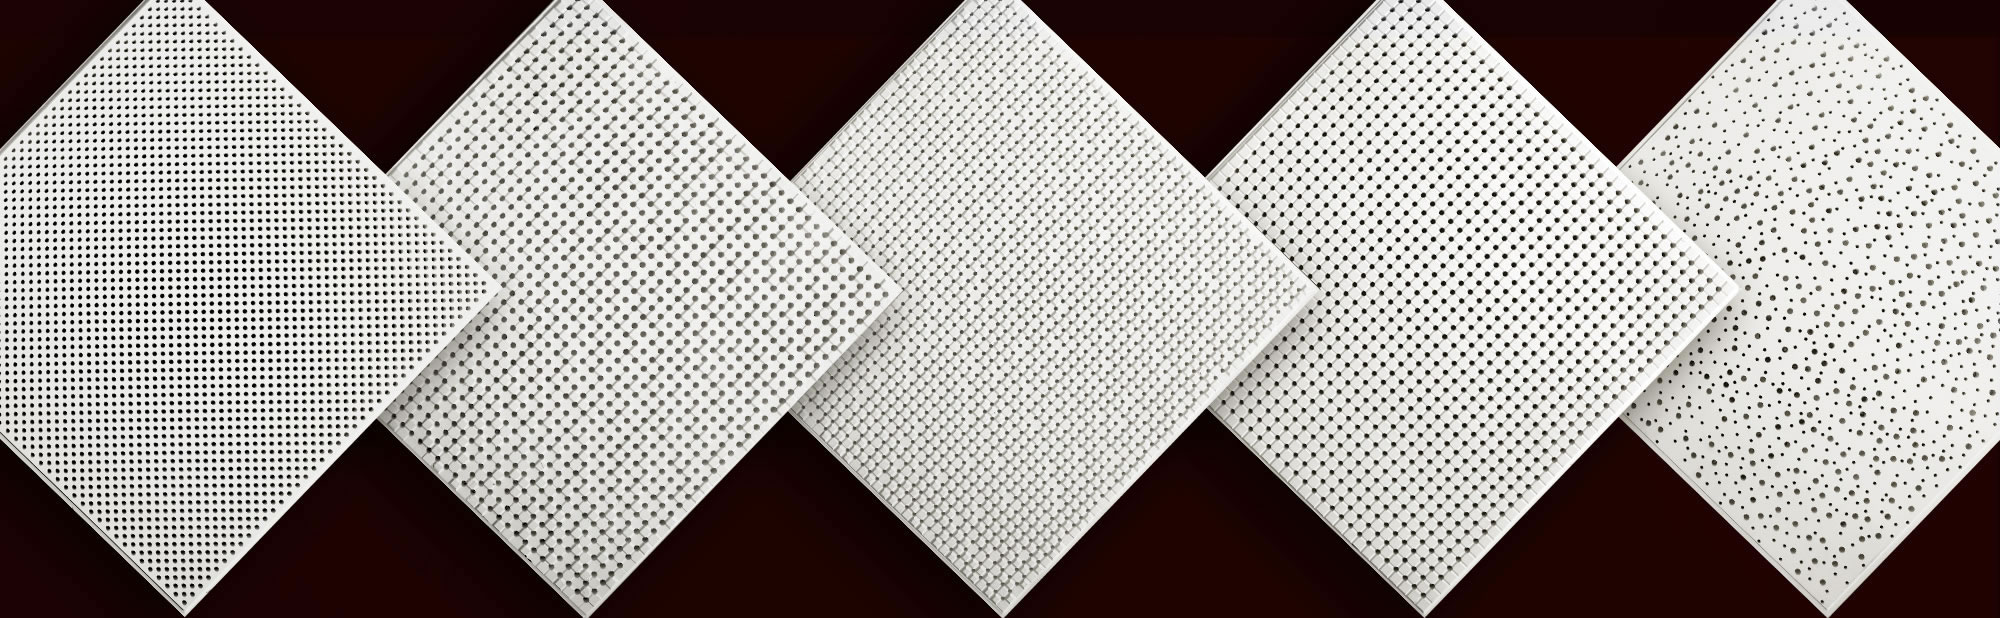 lightweight acoustic tiles